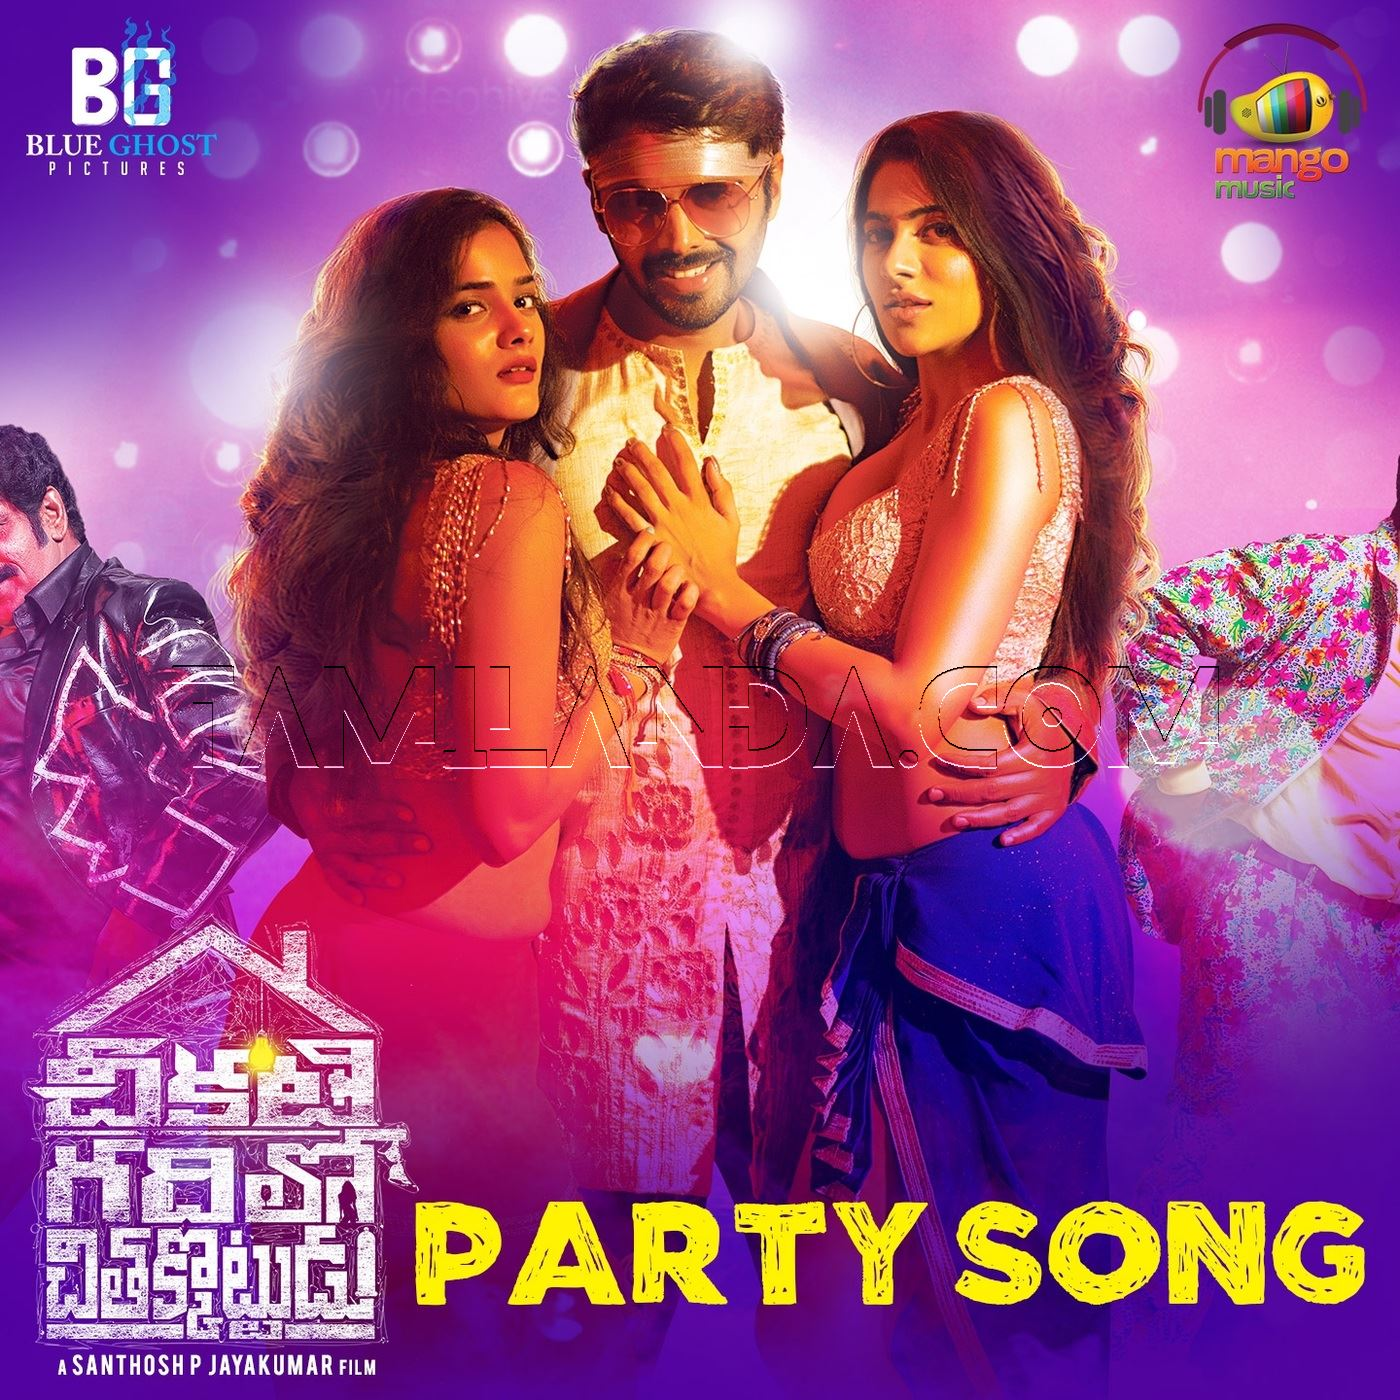 Party Song (From Chikati Gadilo Chithakotudu) – Single FLAC Song (2019)